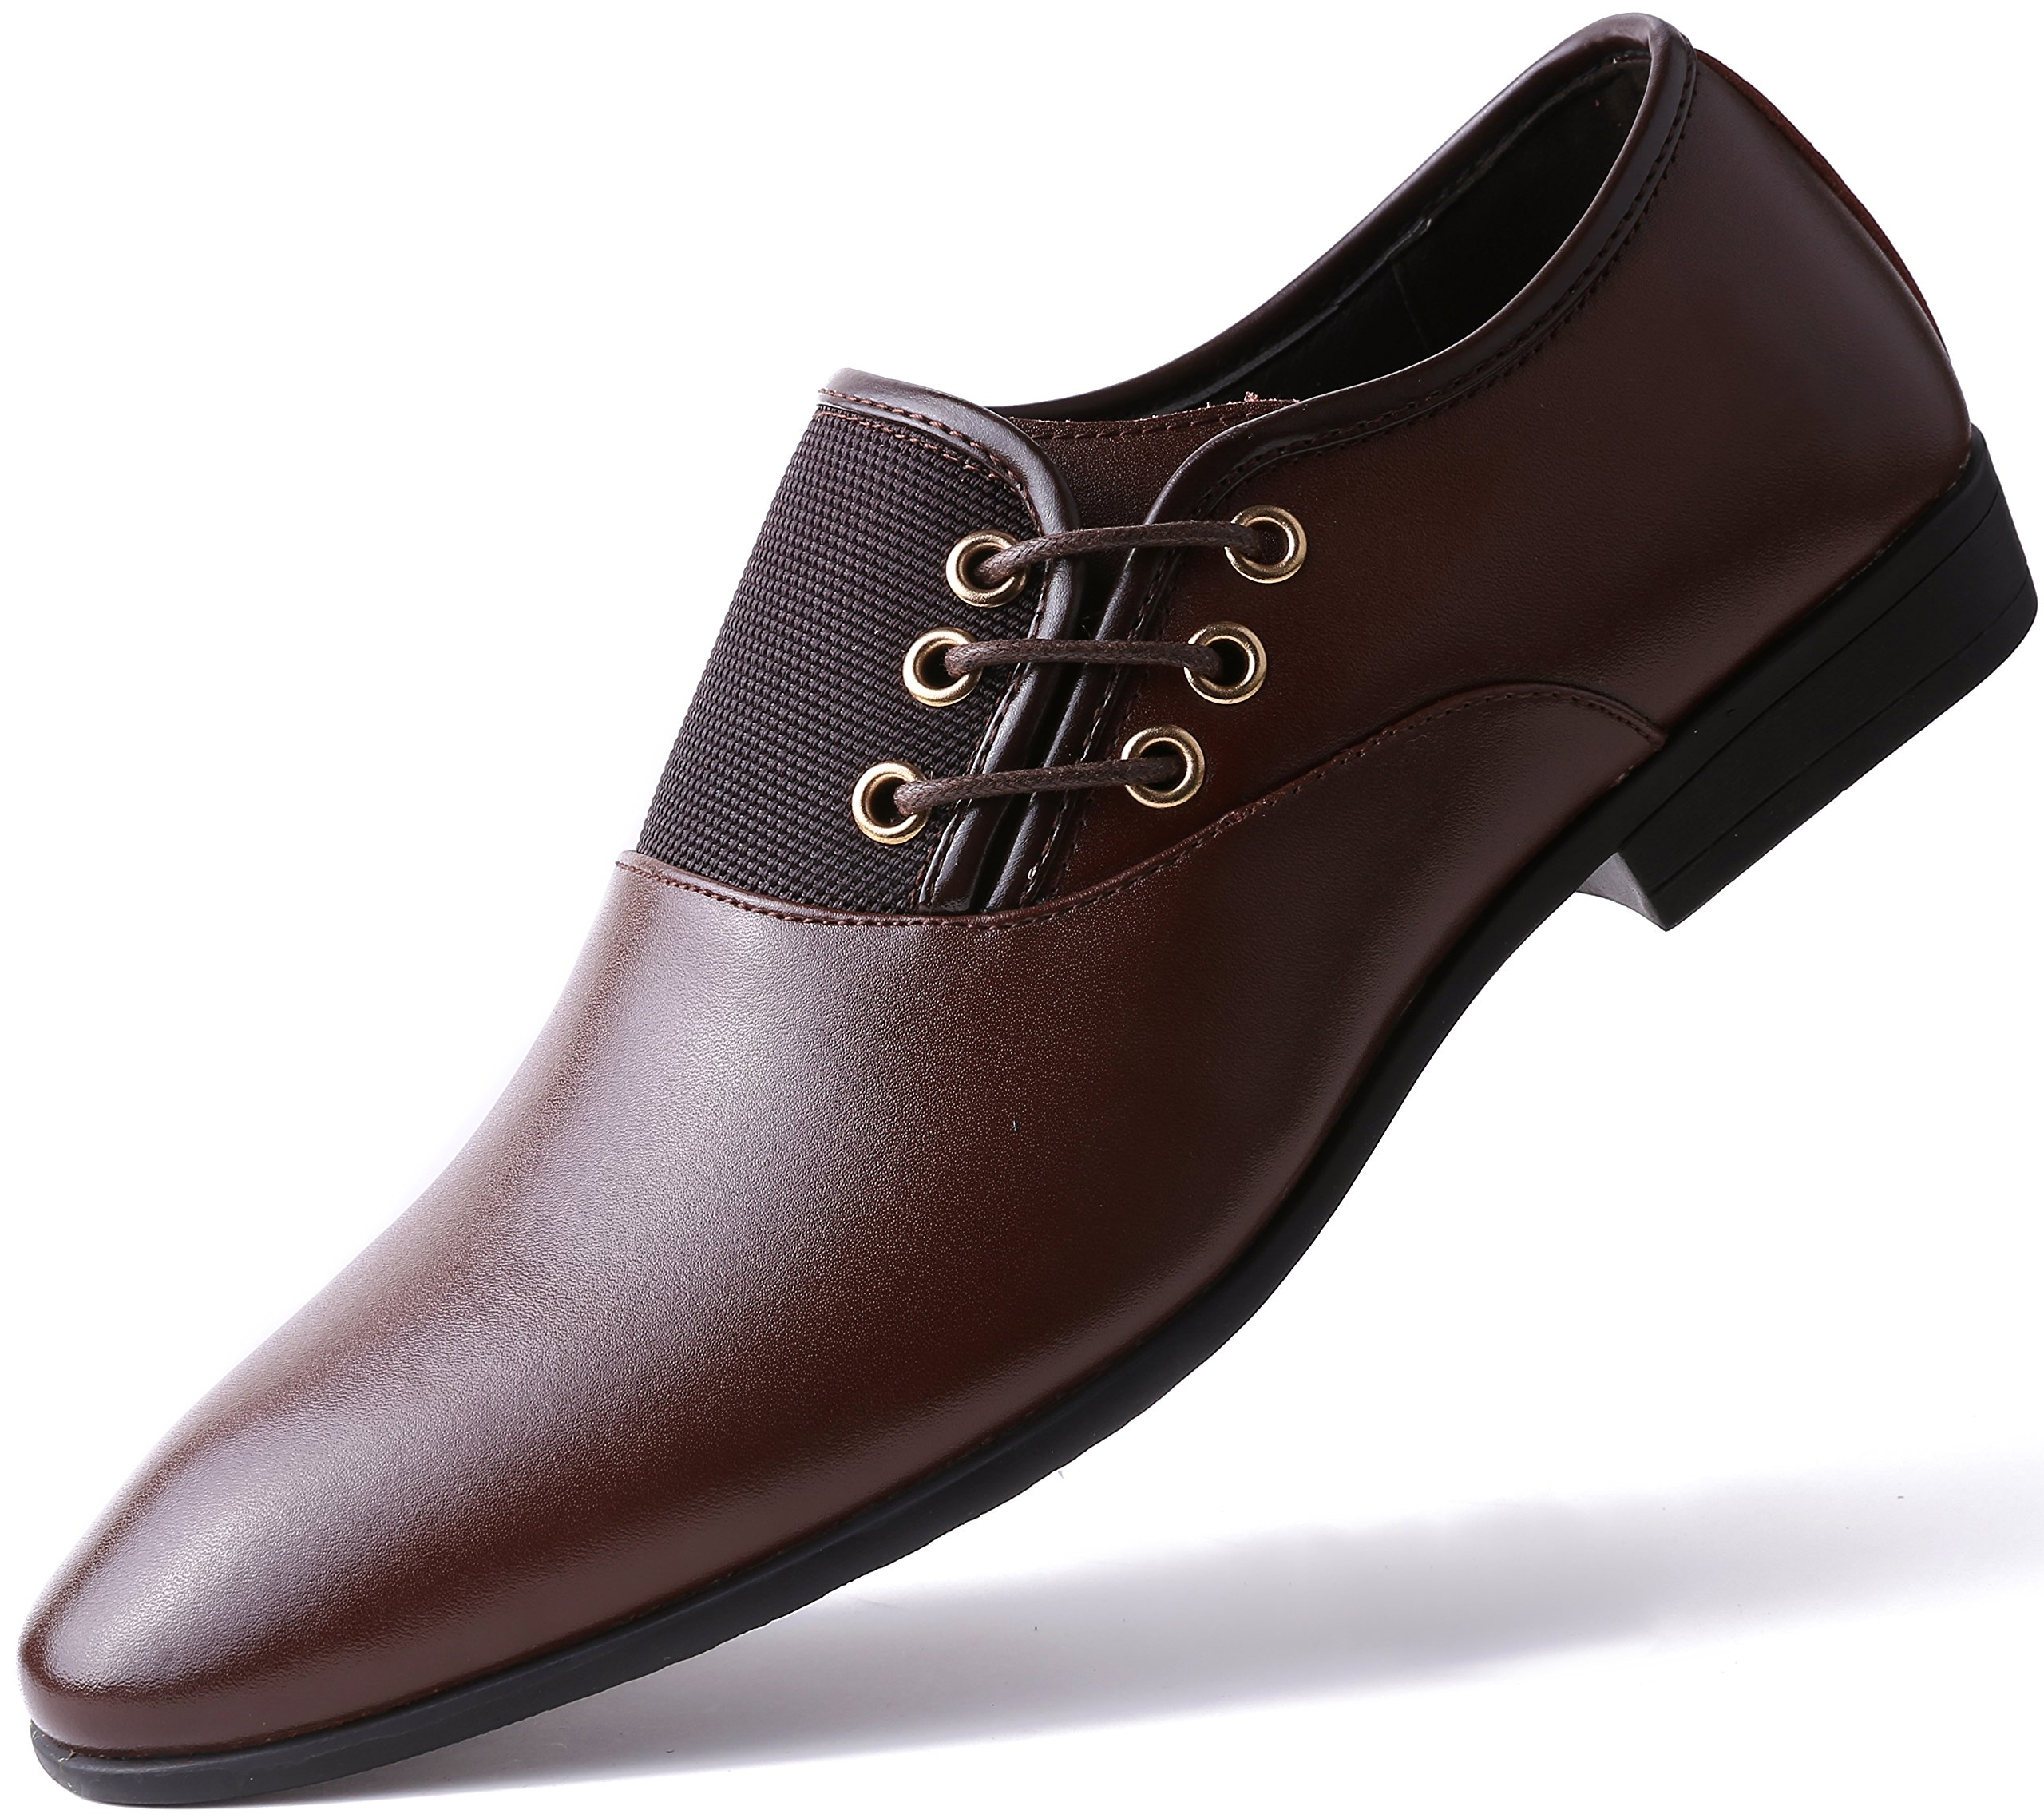 Marino Oxford Dress Shoes for Men - Formal Leather Mens Shoes - Brown - Side Lace - 8.5 D(M) US